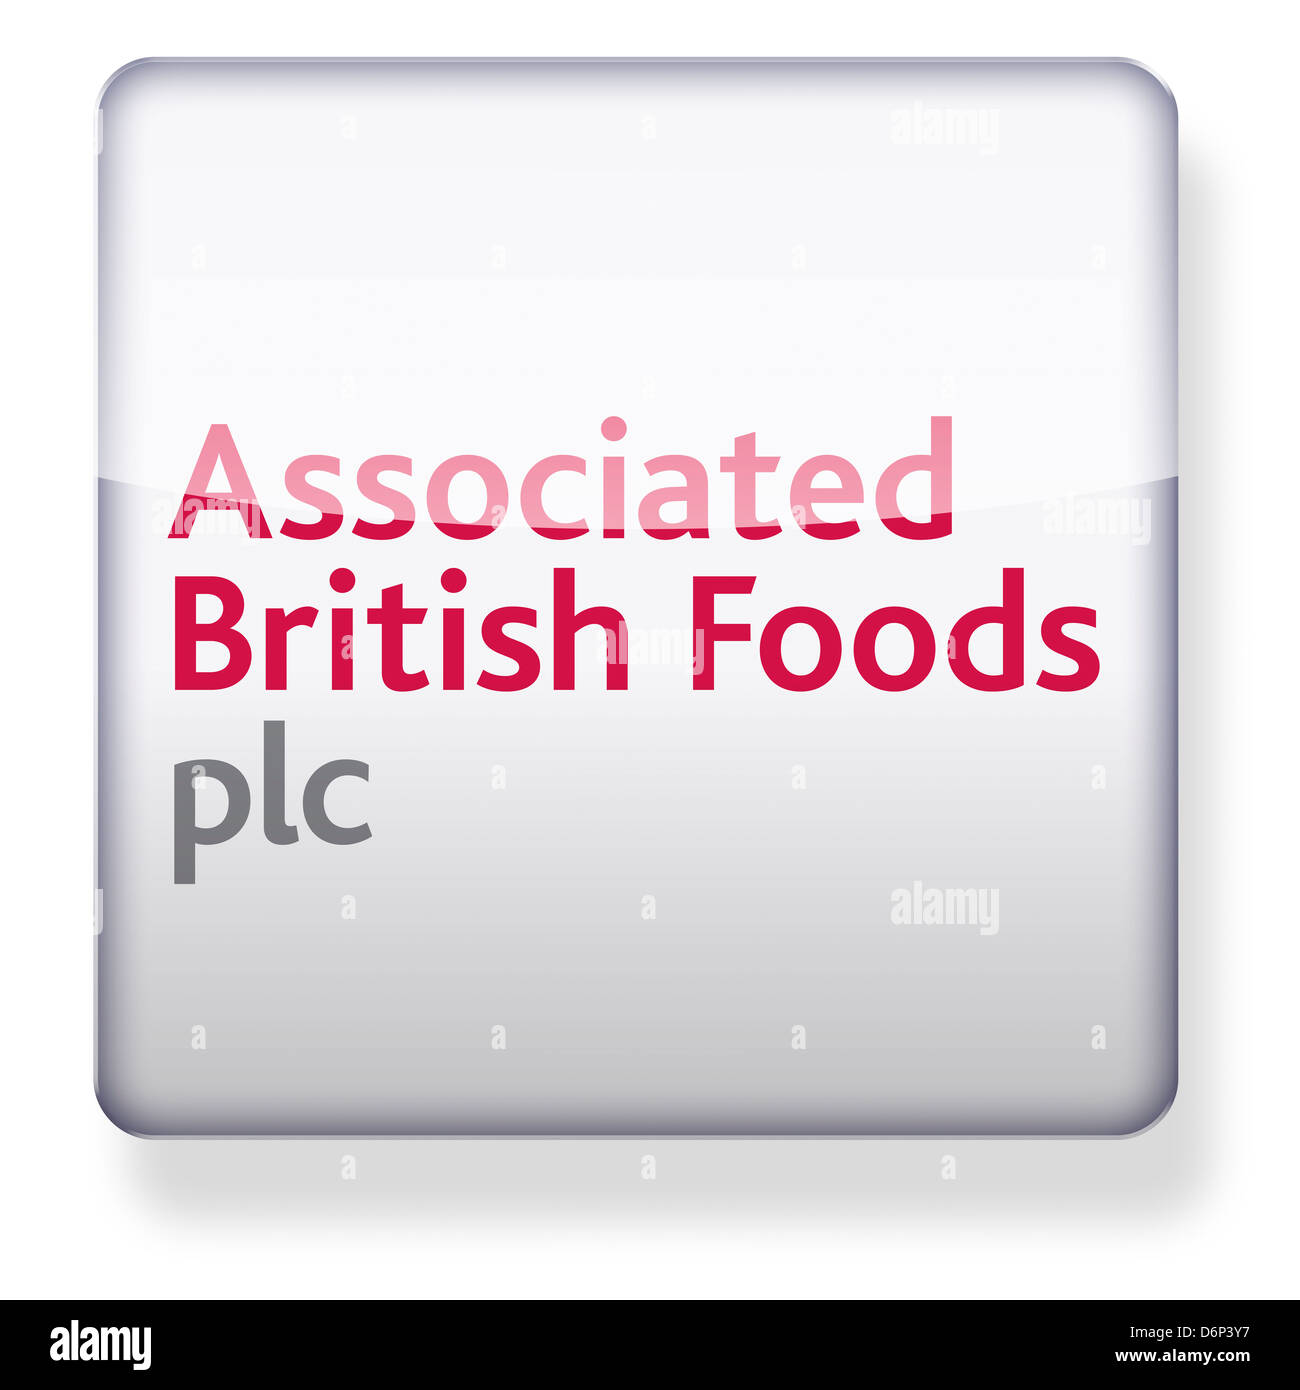 Associated British Foods logo as an app icon. Clipping path included. - Stock Image